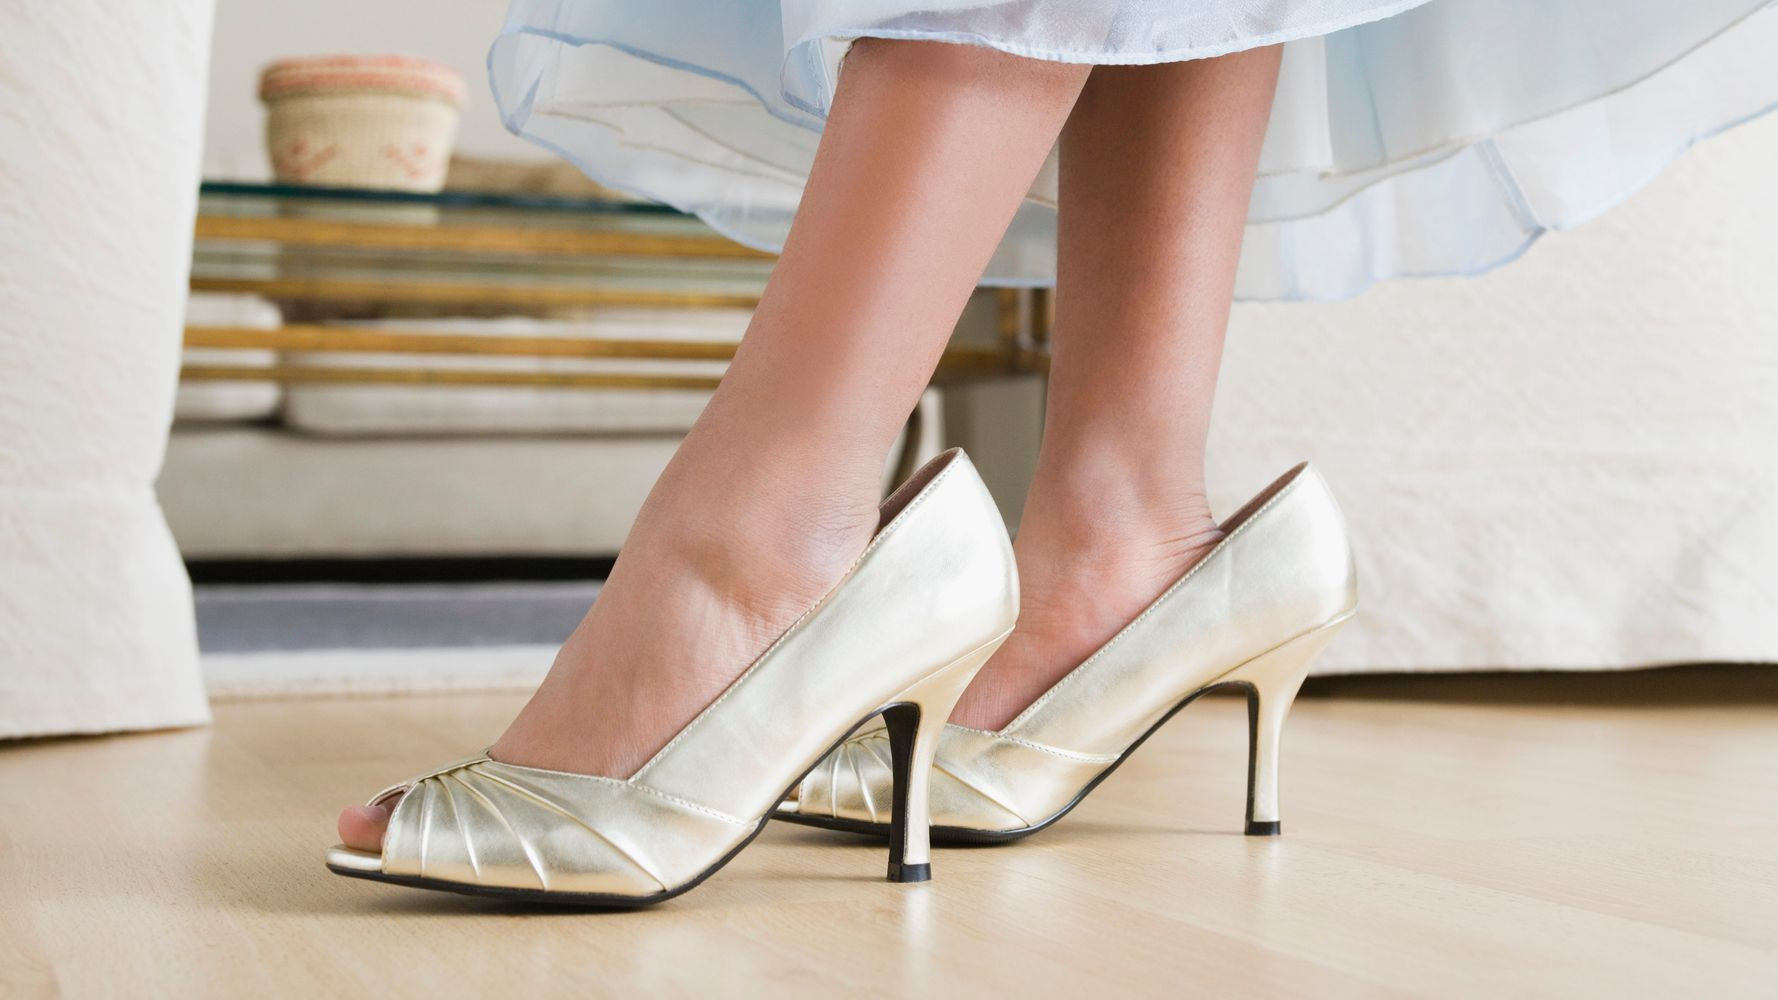 Sites FeetHuffpost The Women 11 Best Small Shoe For Life With SMpqUzV